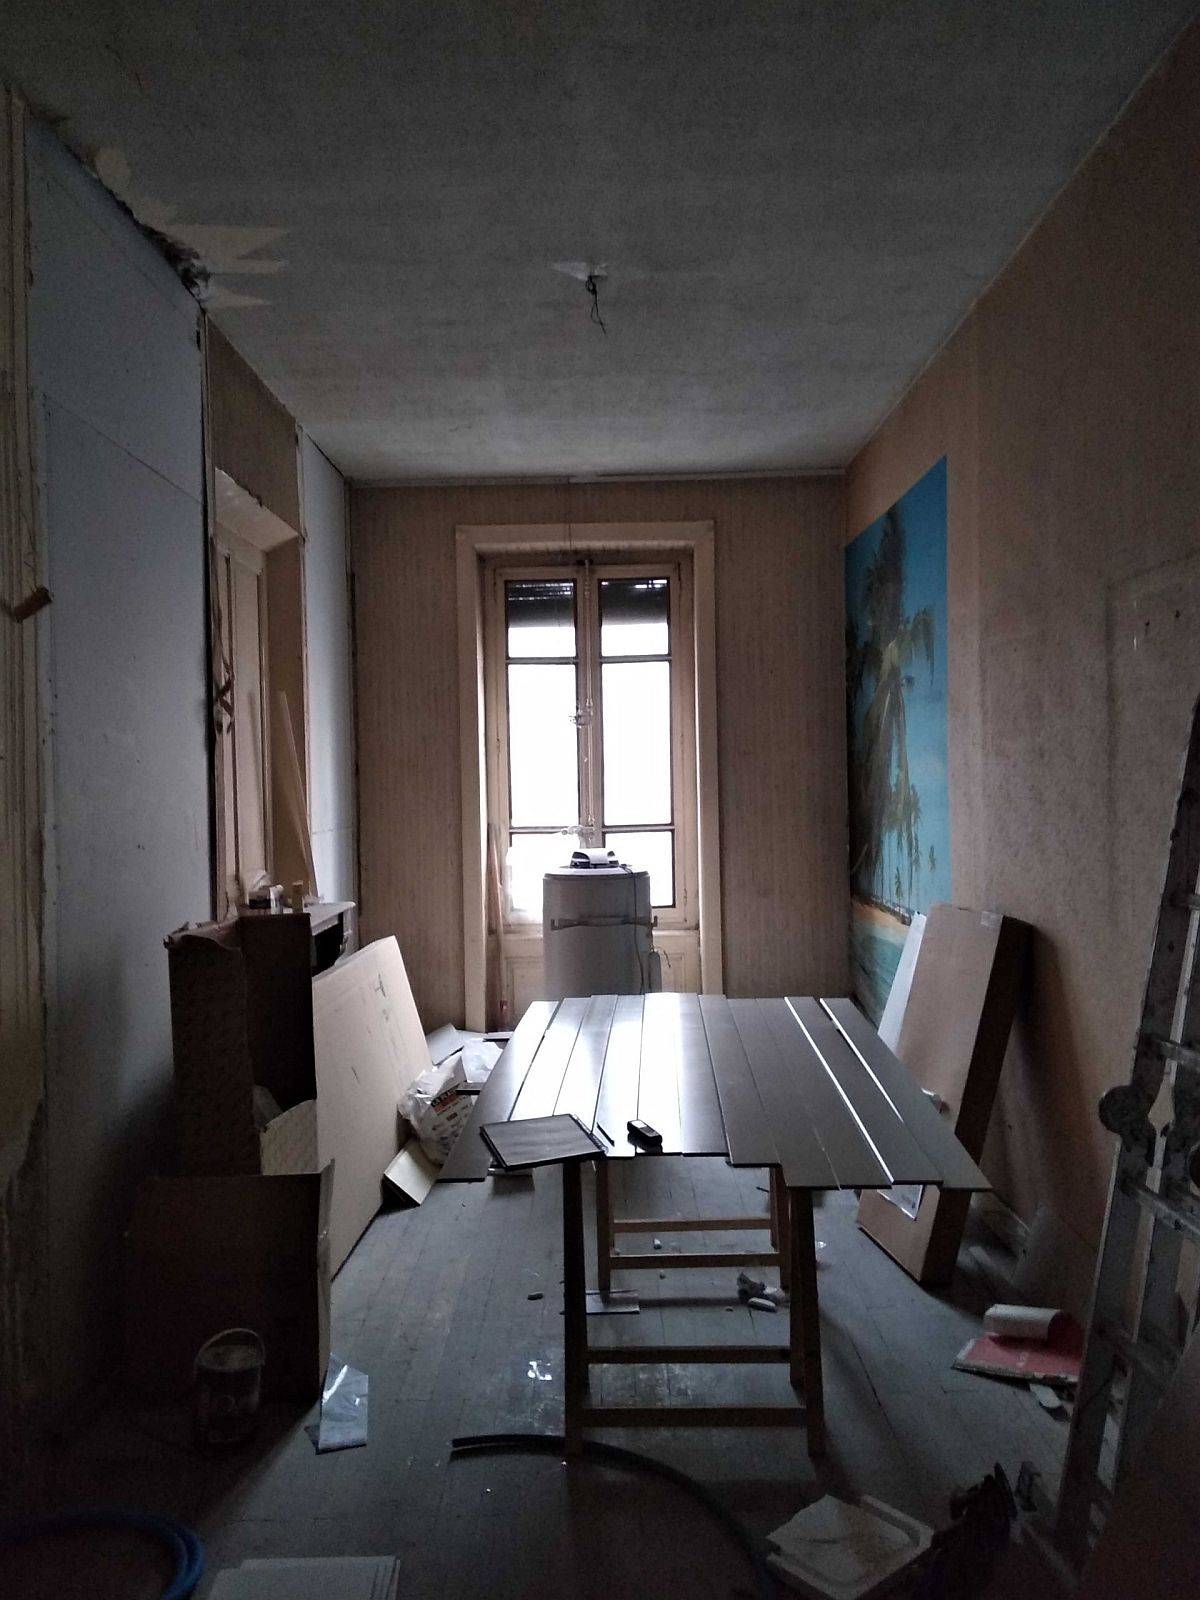 Look-at-the-small-apartment-before-the-completion-of-the-mdoern-space-savvy-renovation-97258